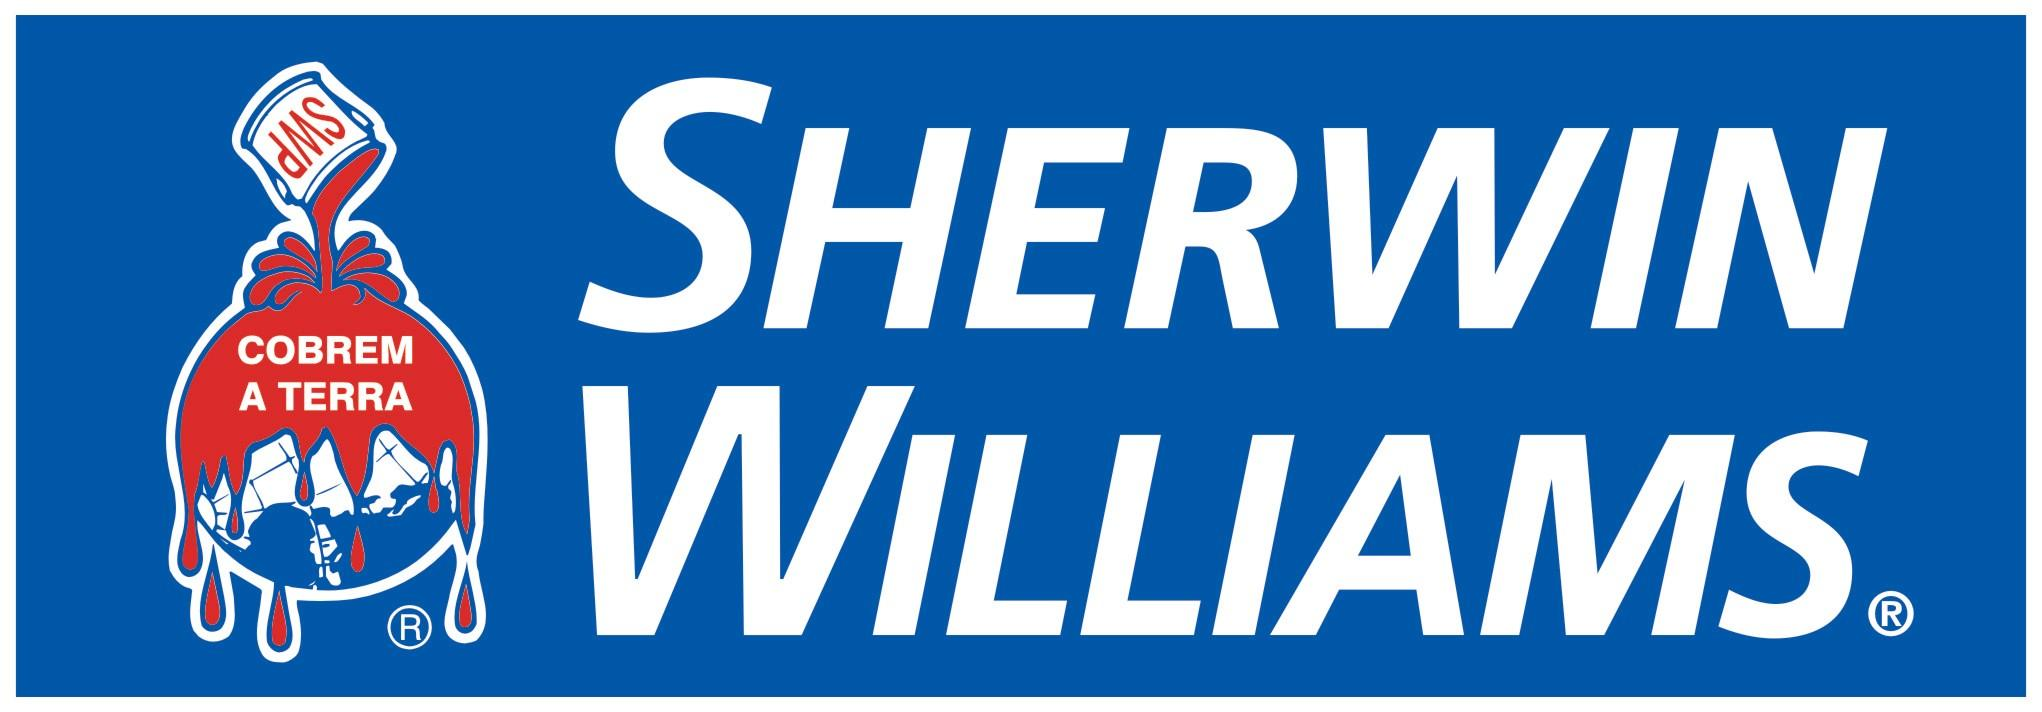 sherwin williams co an unsung growth hero the sherwin williams